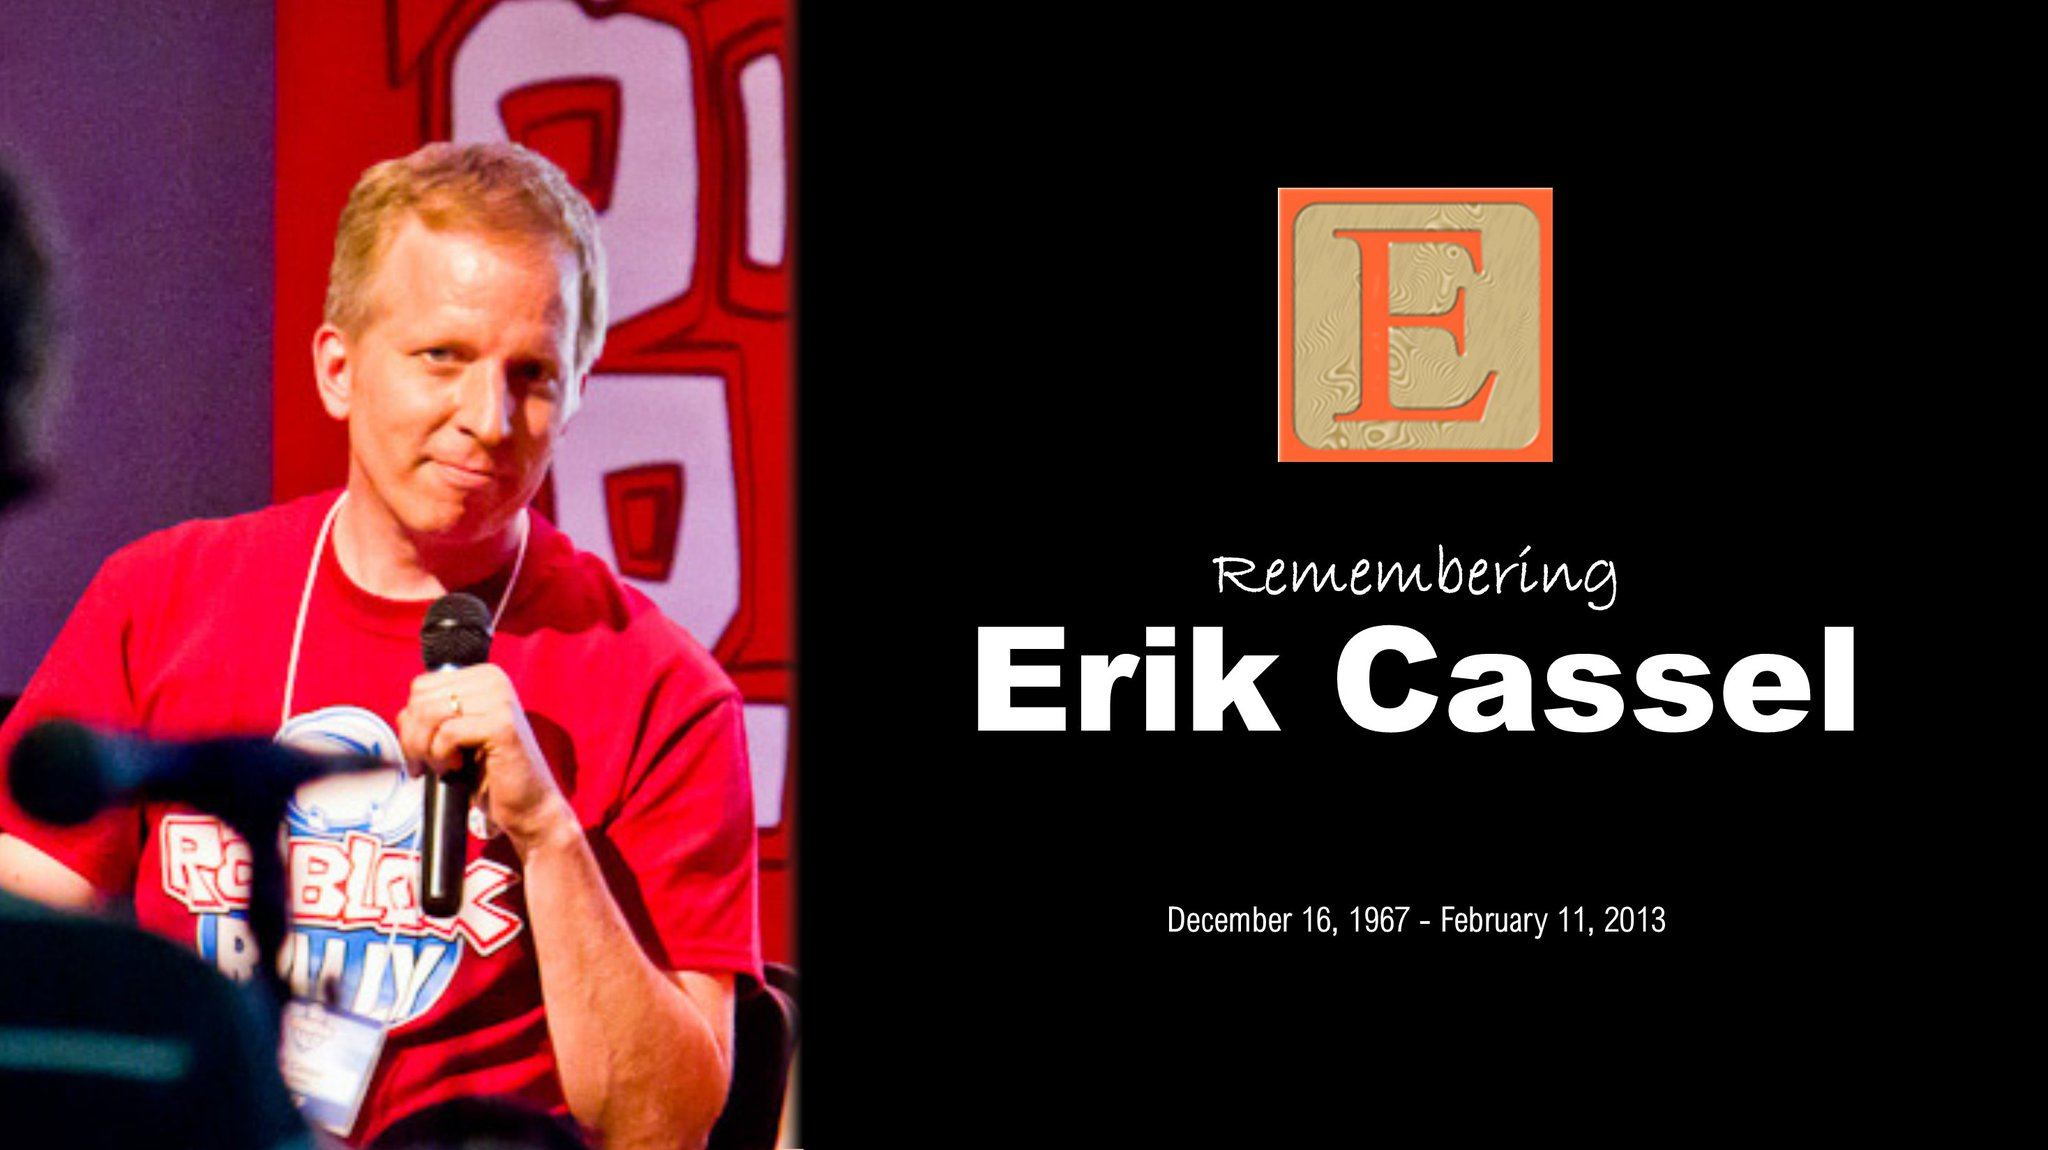 Bloxy News On Twitter Today We Remember The Life Of Erik Cassel